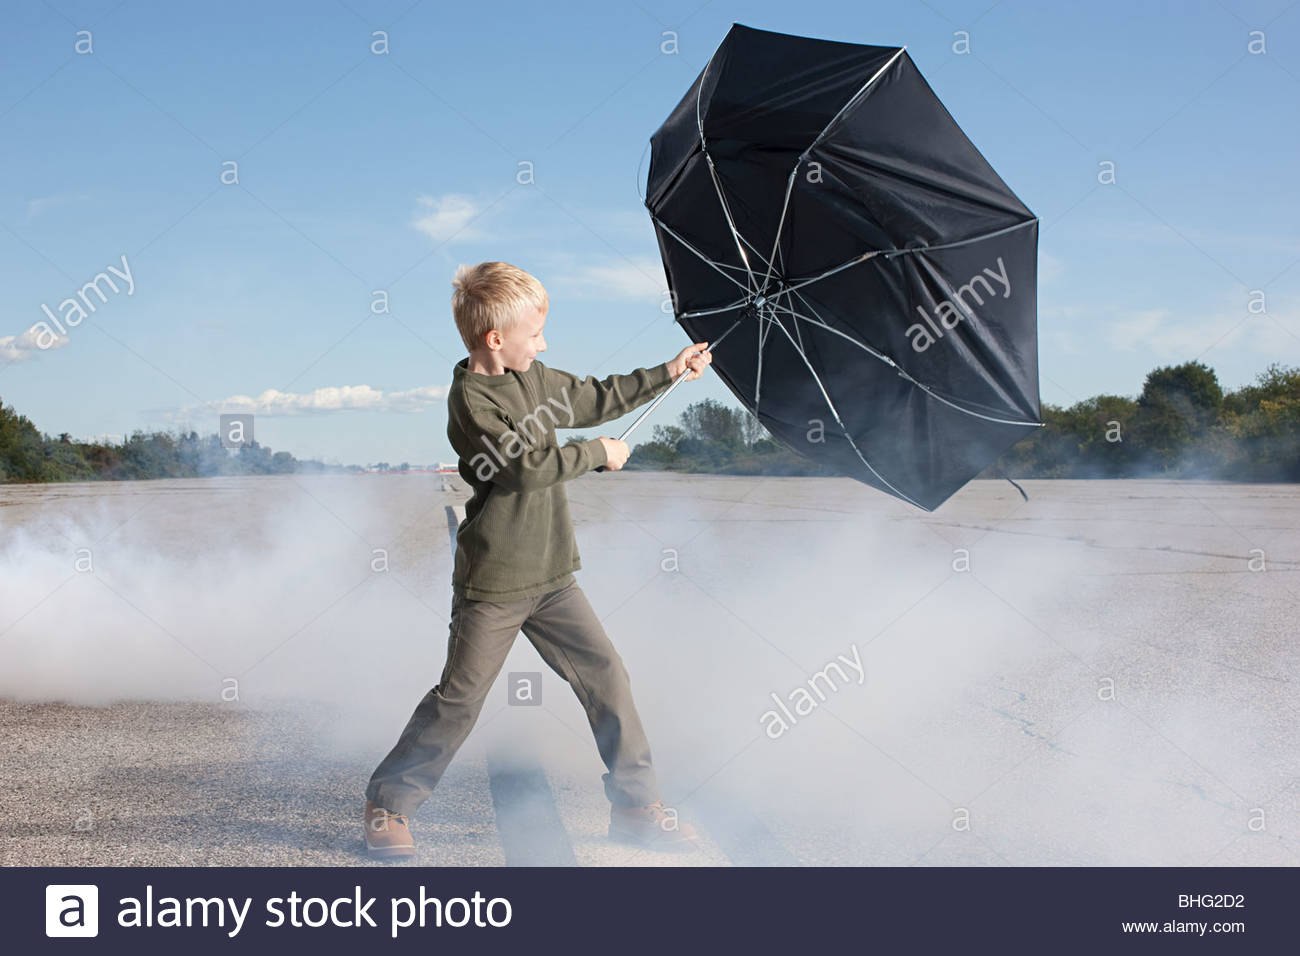 Boy on runway with umbrella - Stock Image